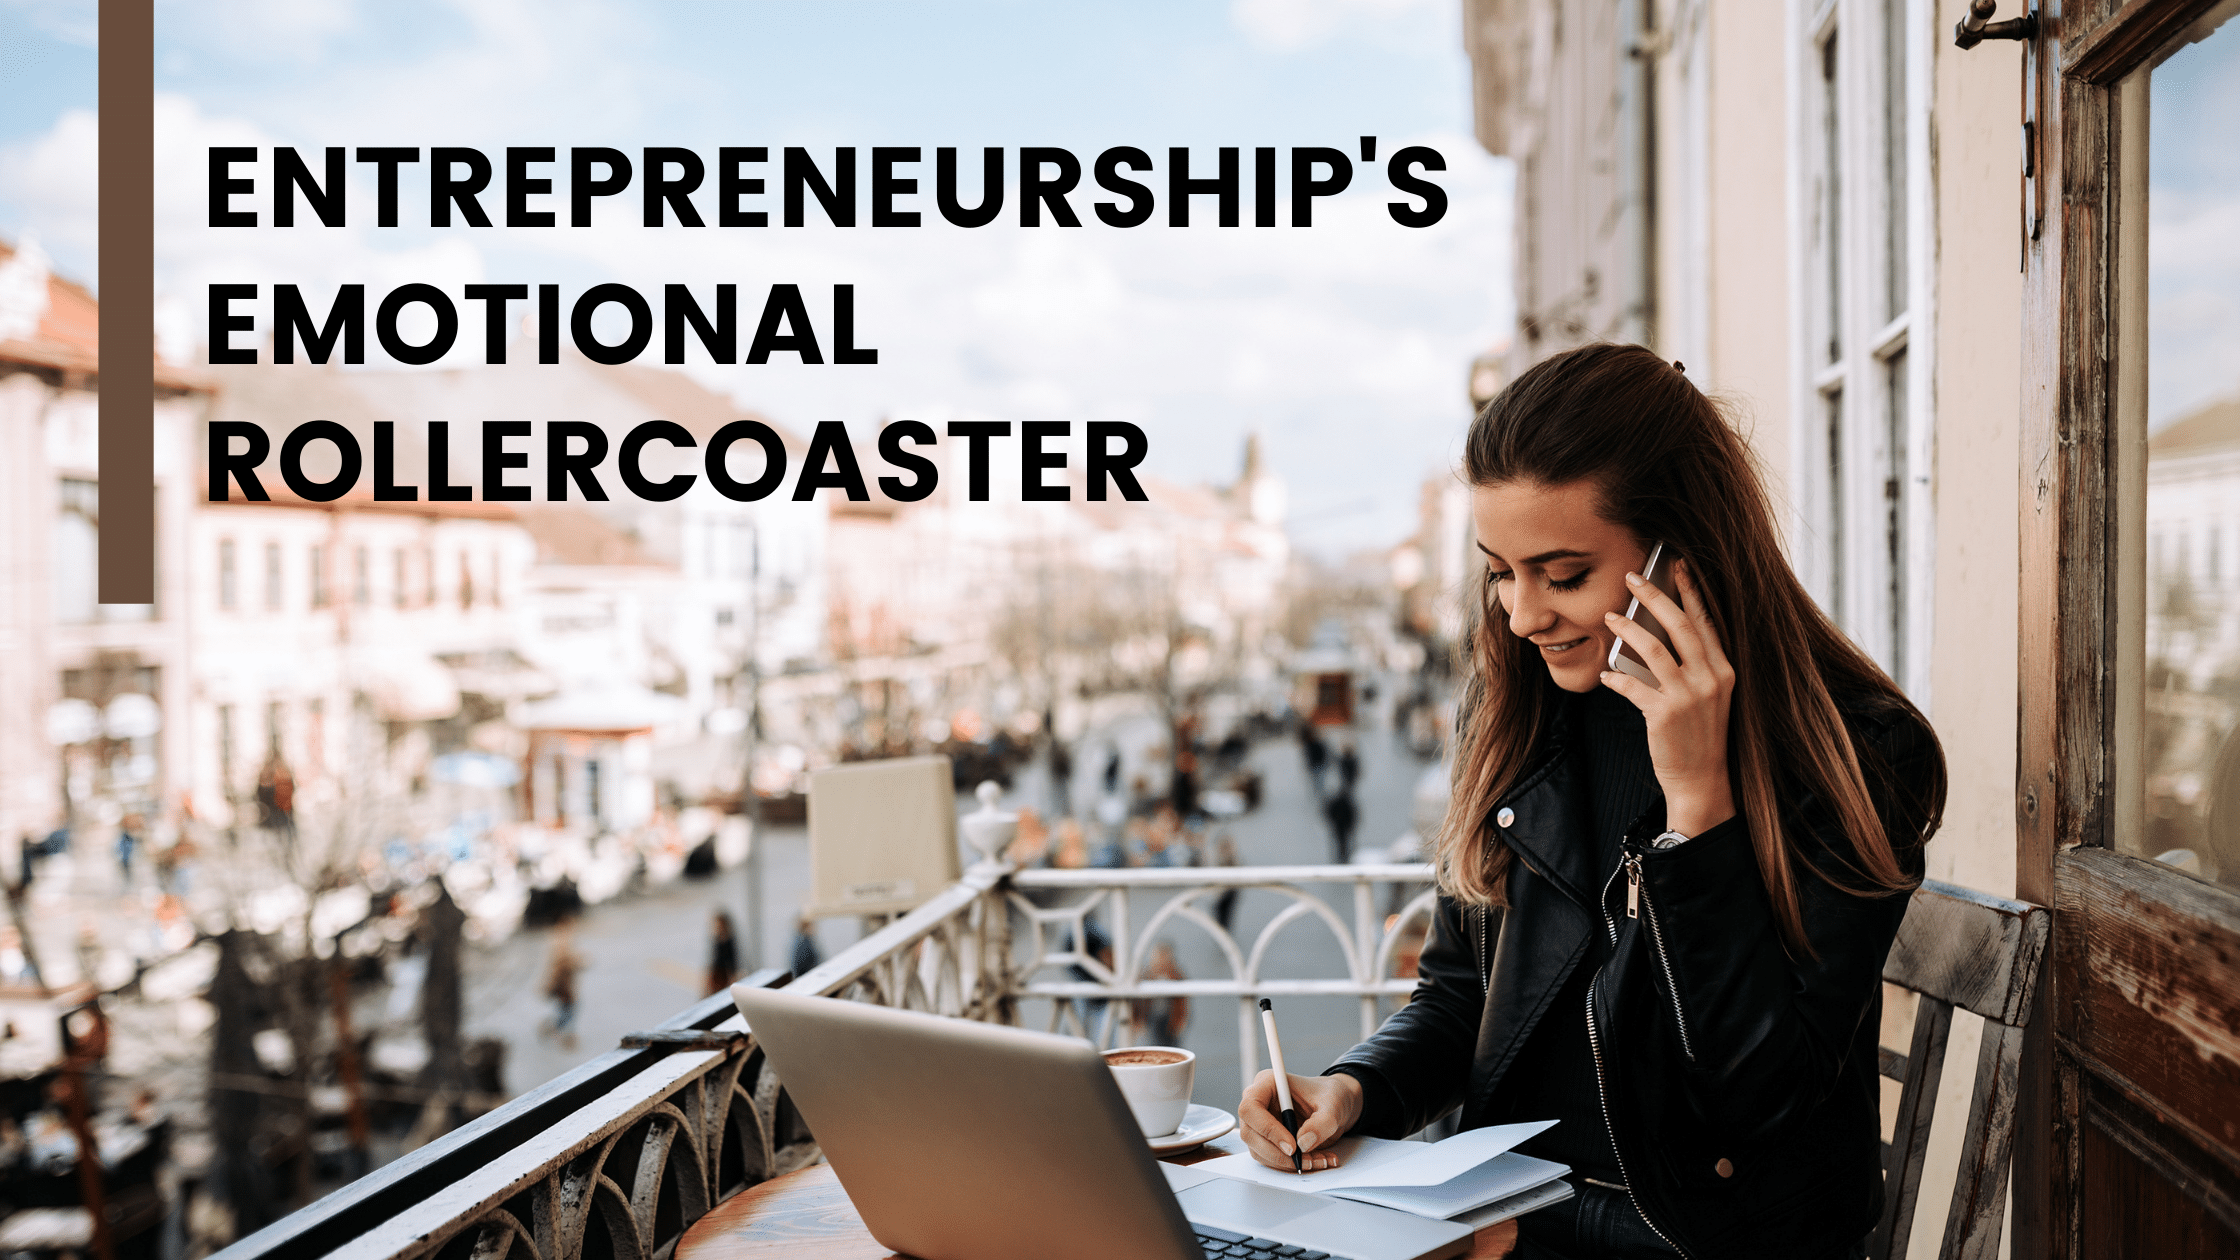 Entrepreneurship's Emotional Rollercoaster: Self Care For Small Business Owners